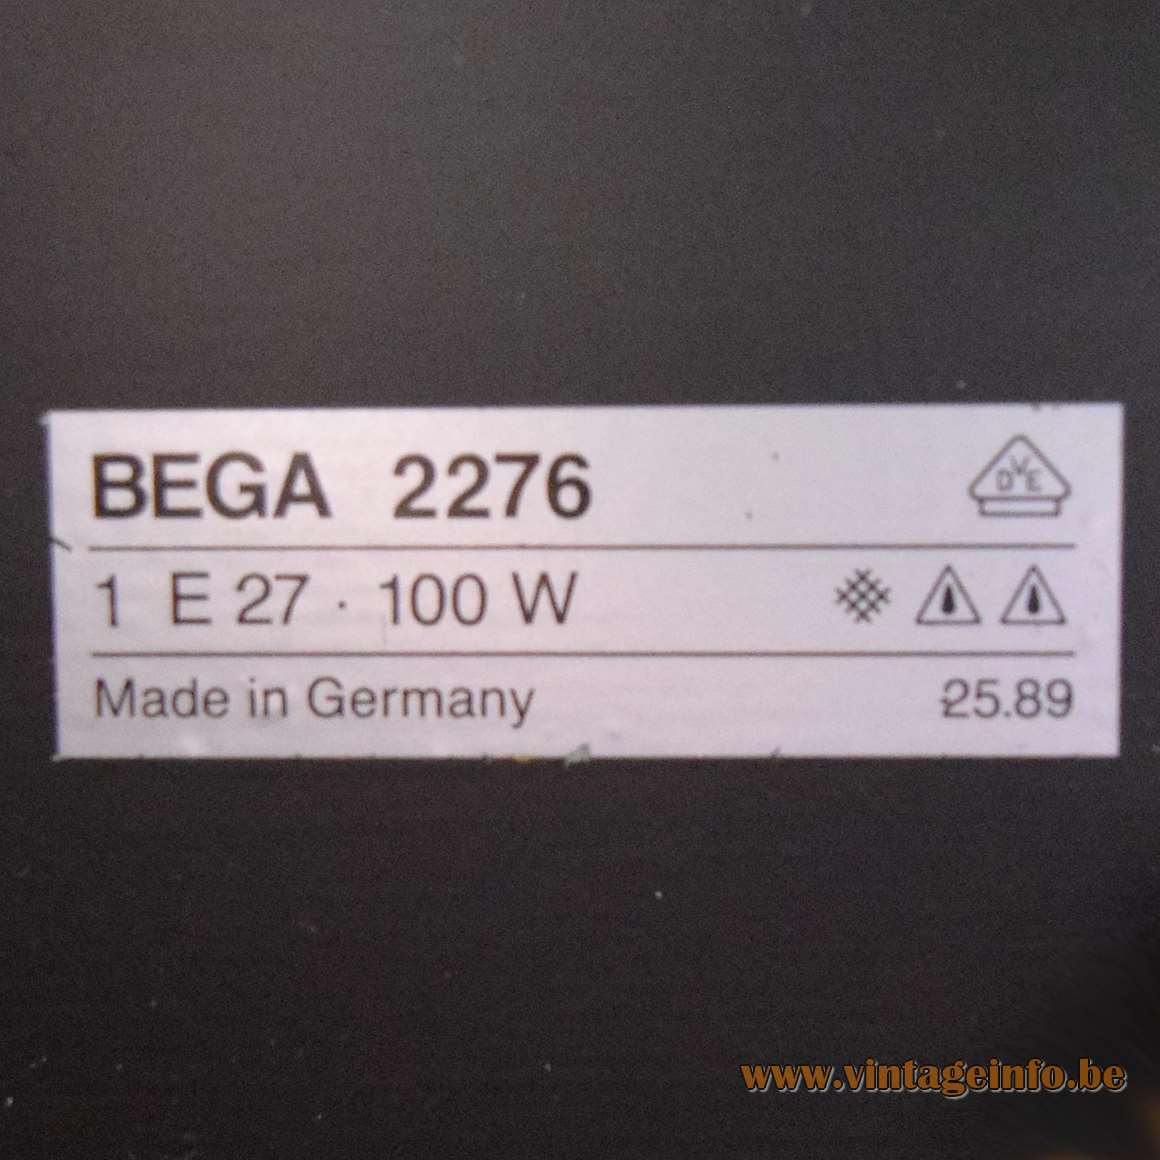 BEGA 1980s Outdoor Wall Lamp 2276 - Label